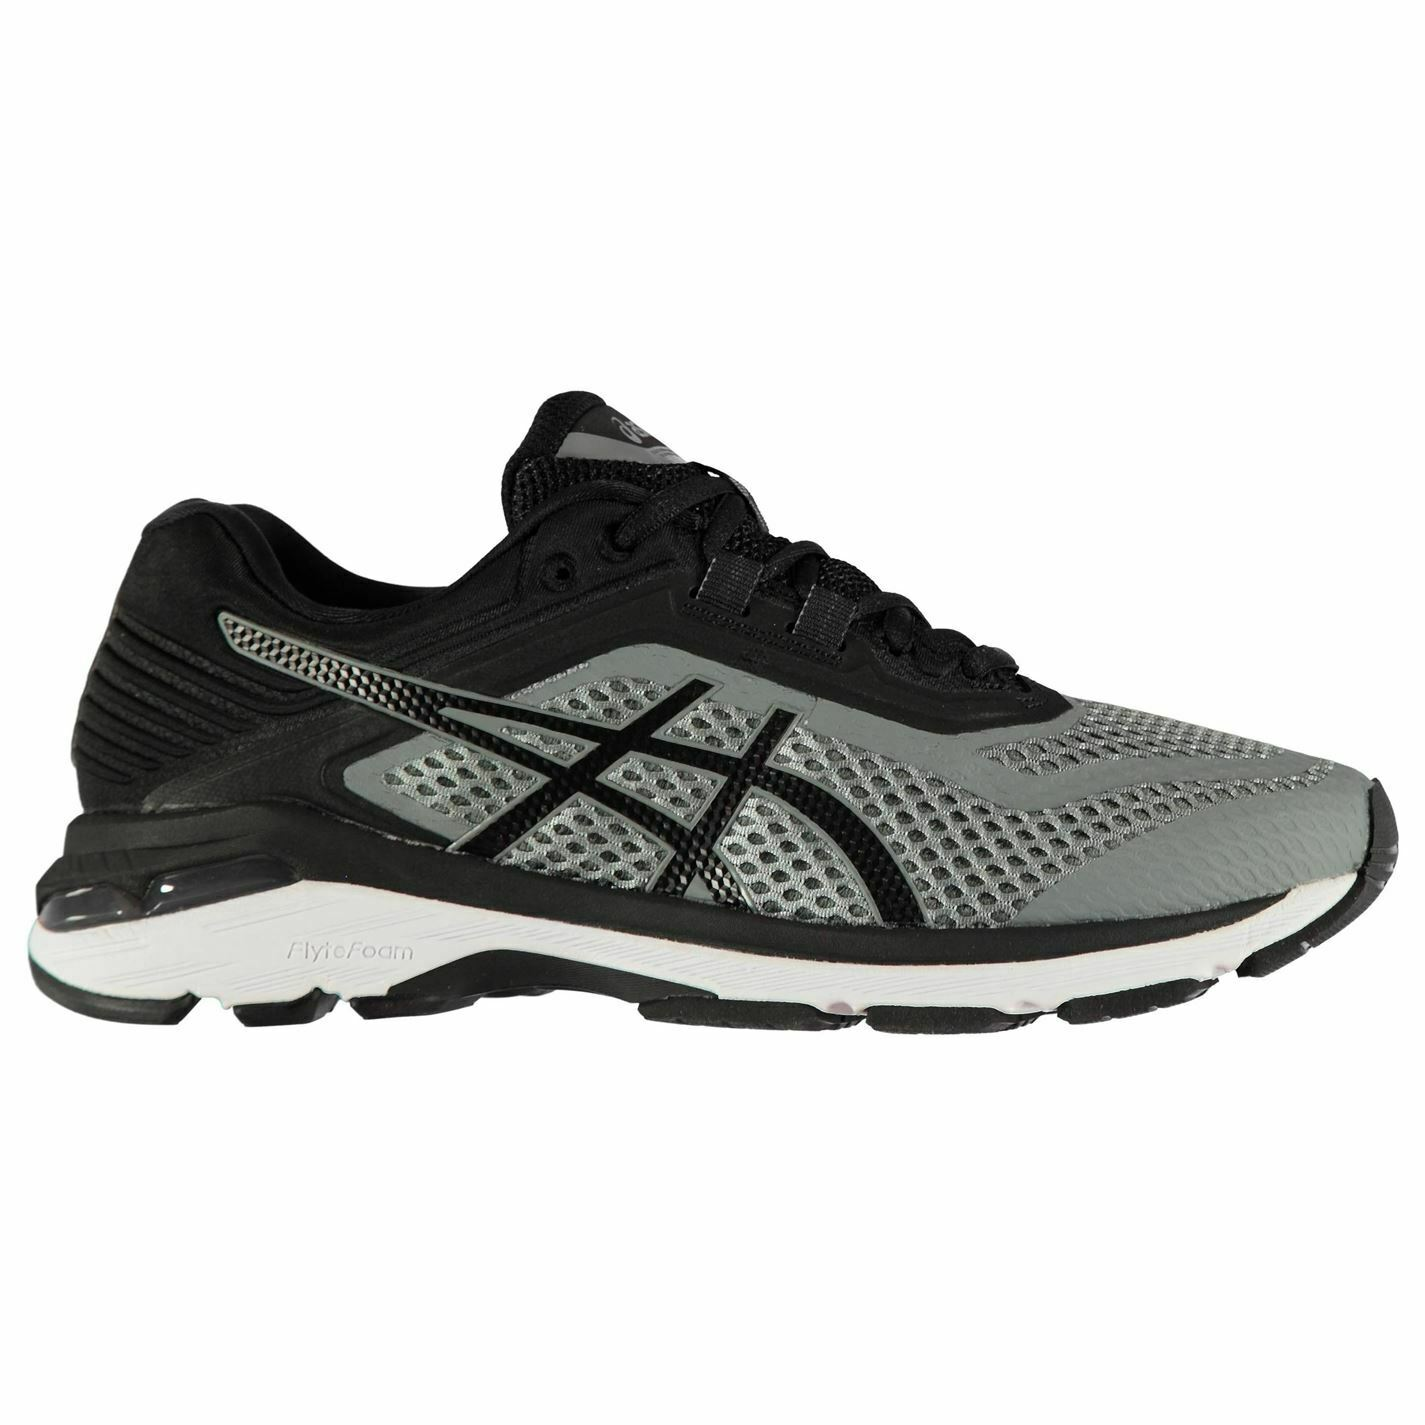 Asics Mens Gt2000 6 Running shoes  Athletic Trainers Sneakers Sport Footwear  be in great demand